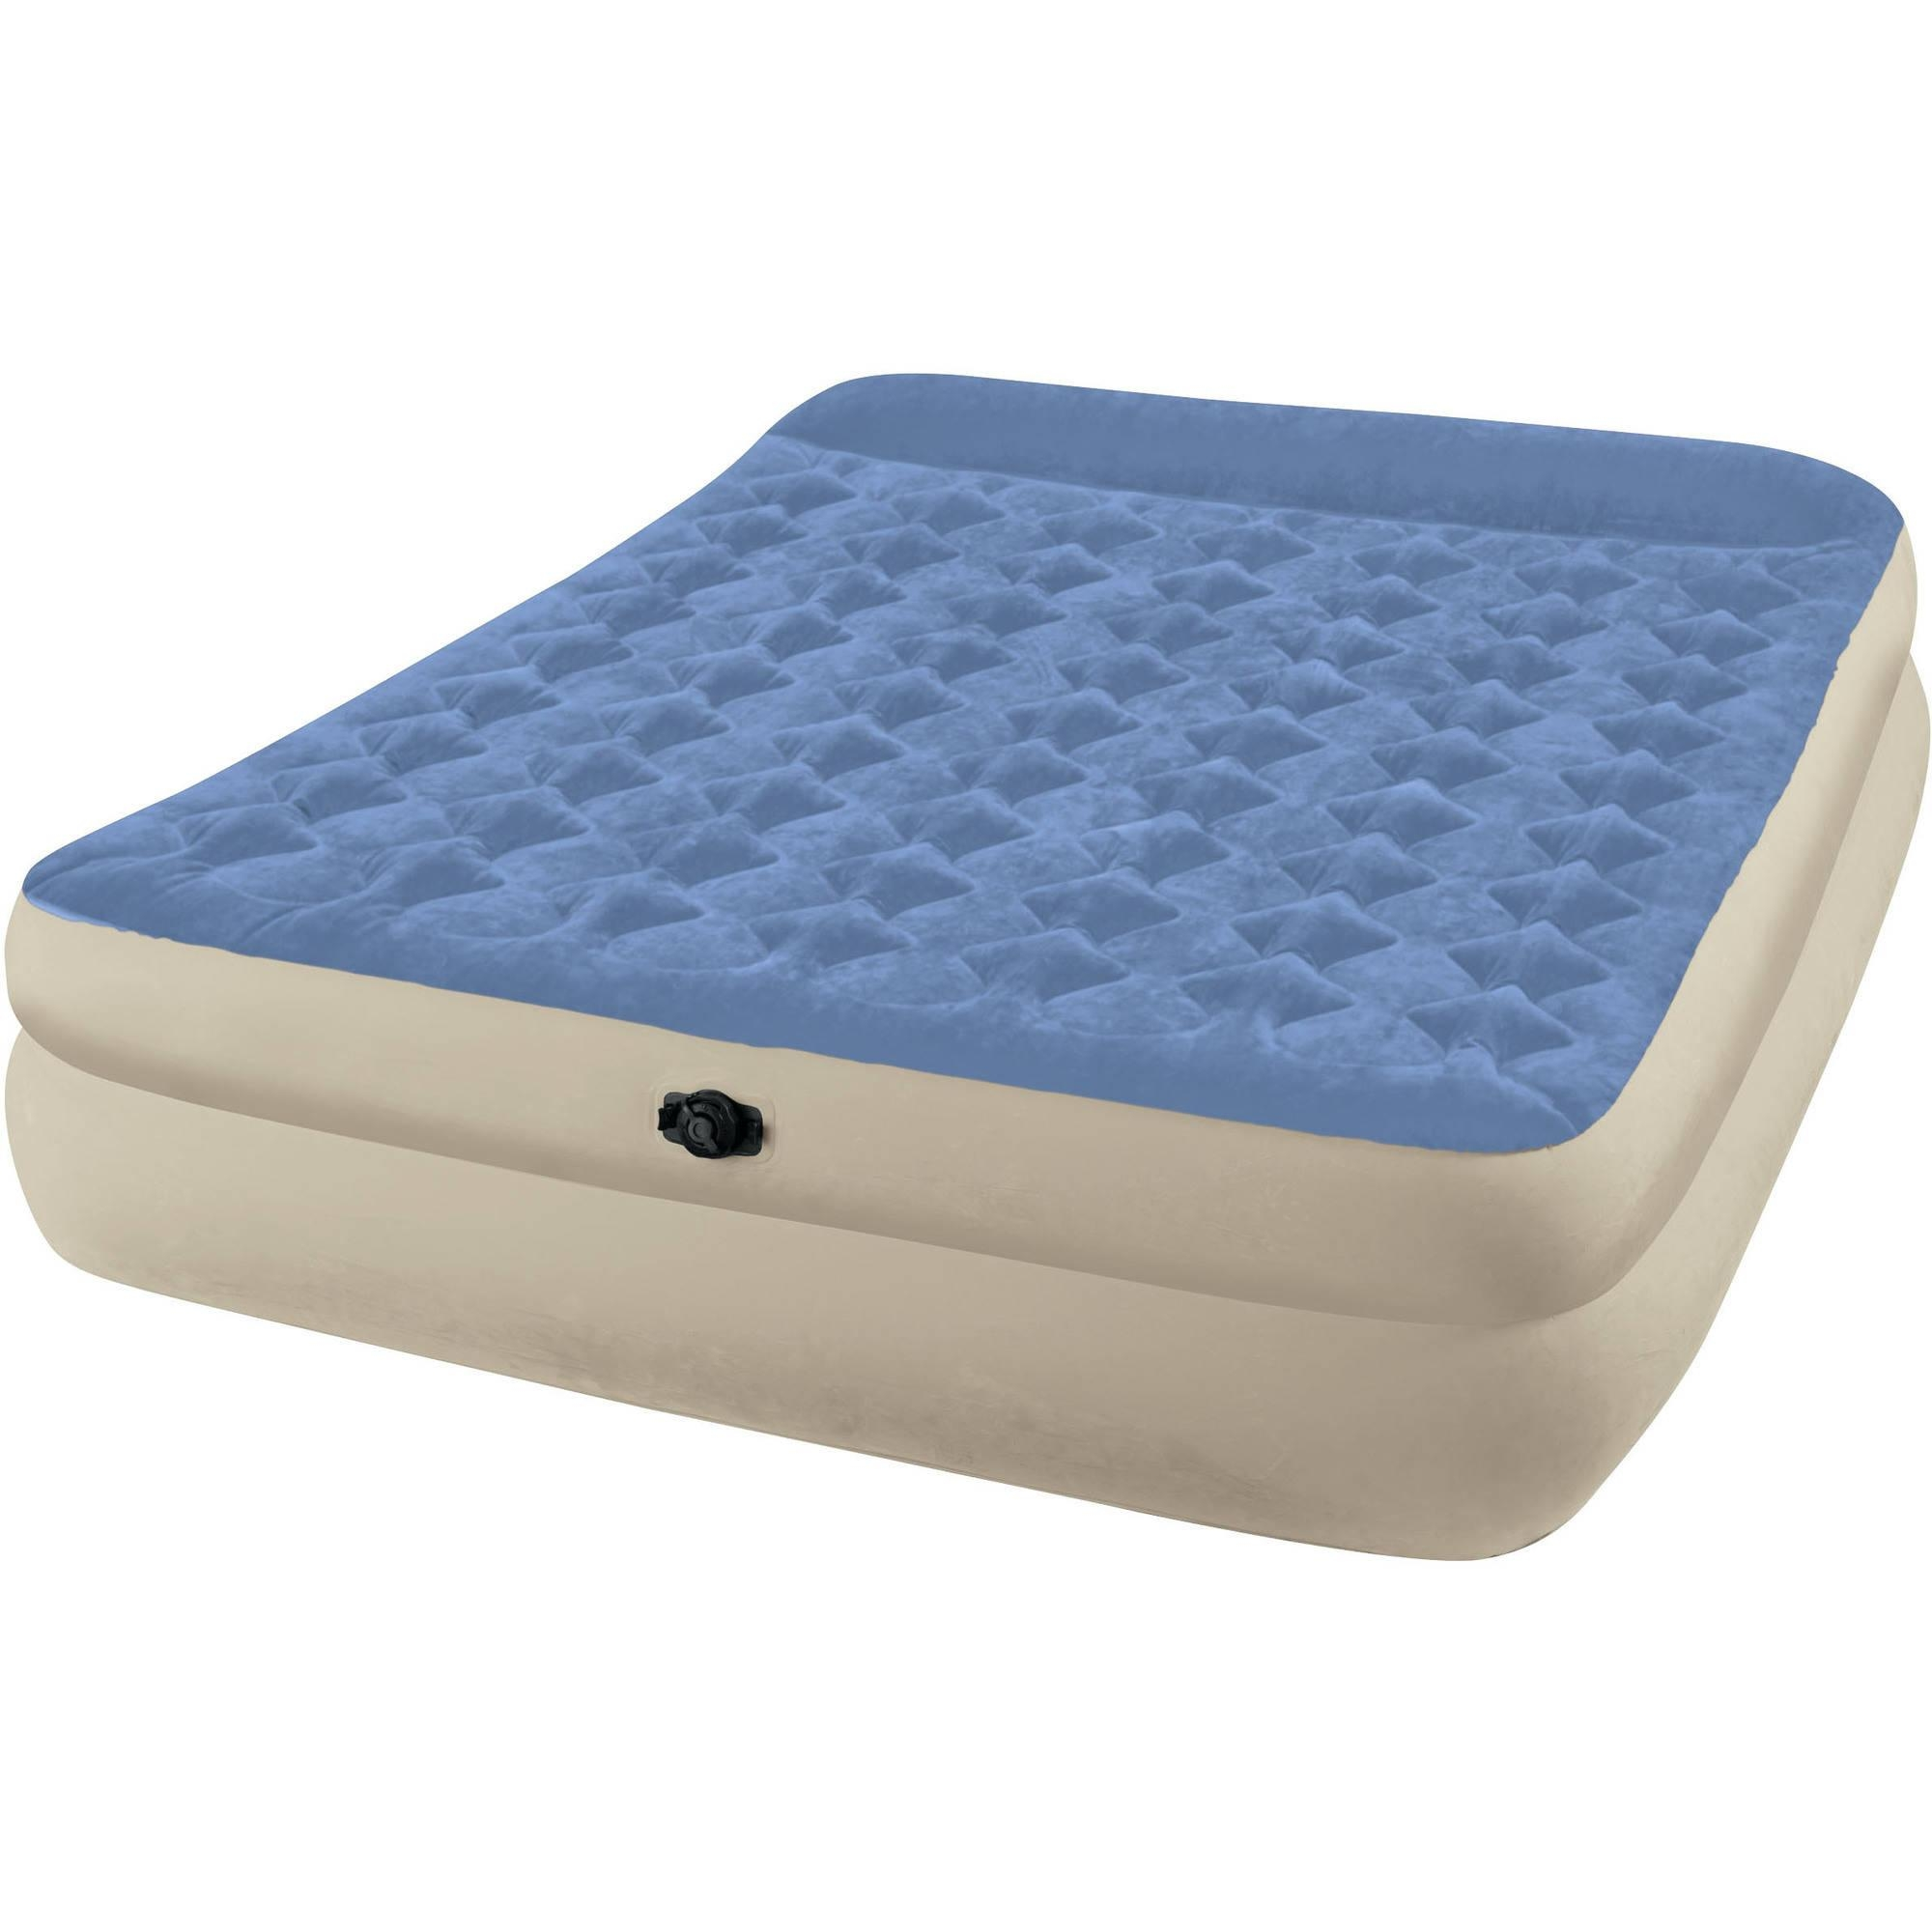 Intex Air Beds With Regard To Inflatable Full Size Mattress (Image 5 of 20)